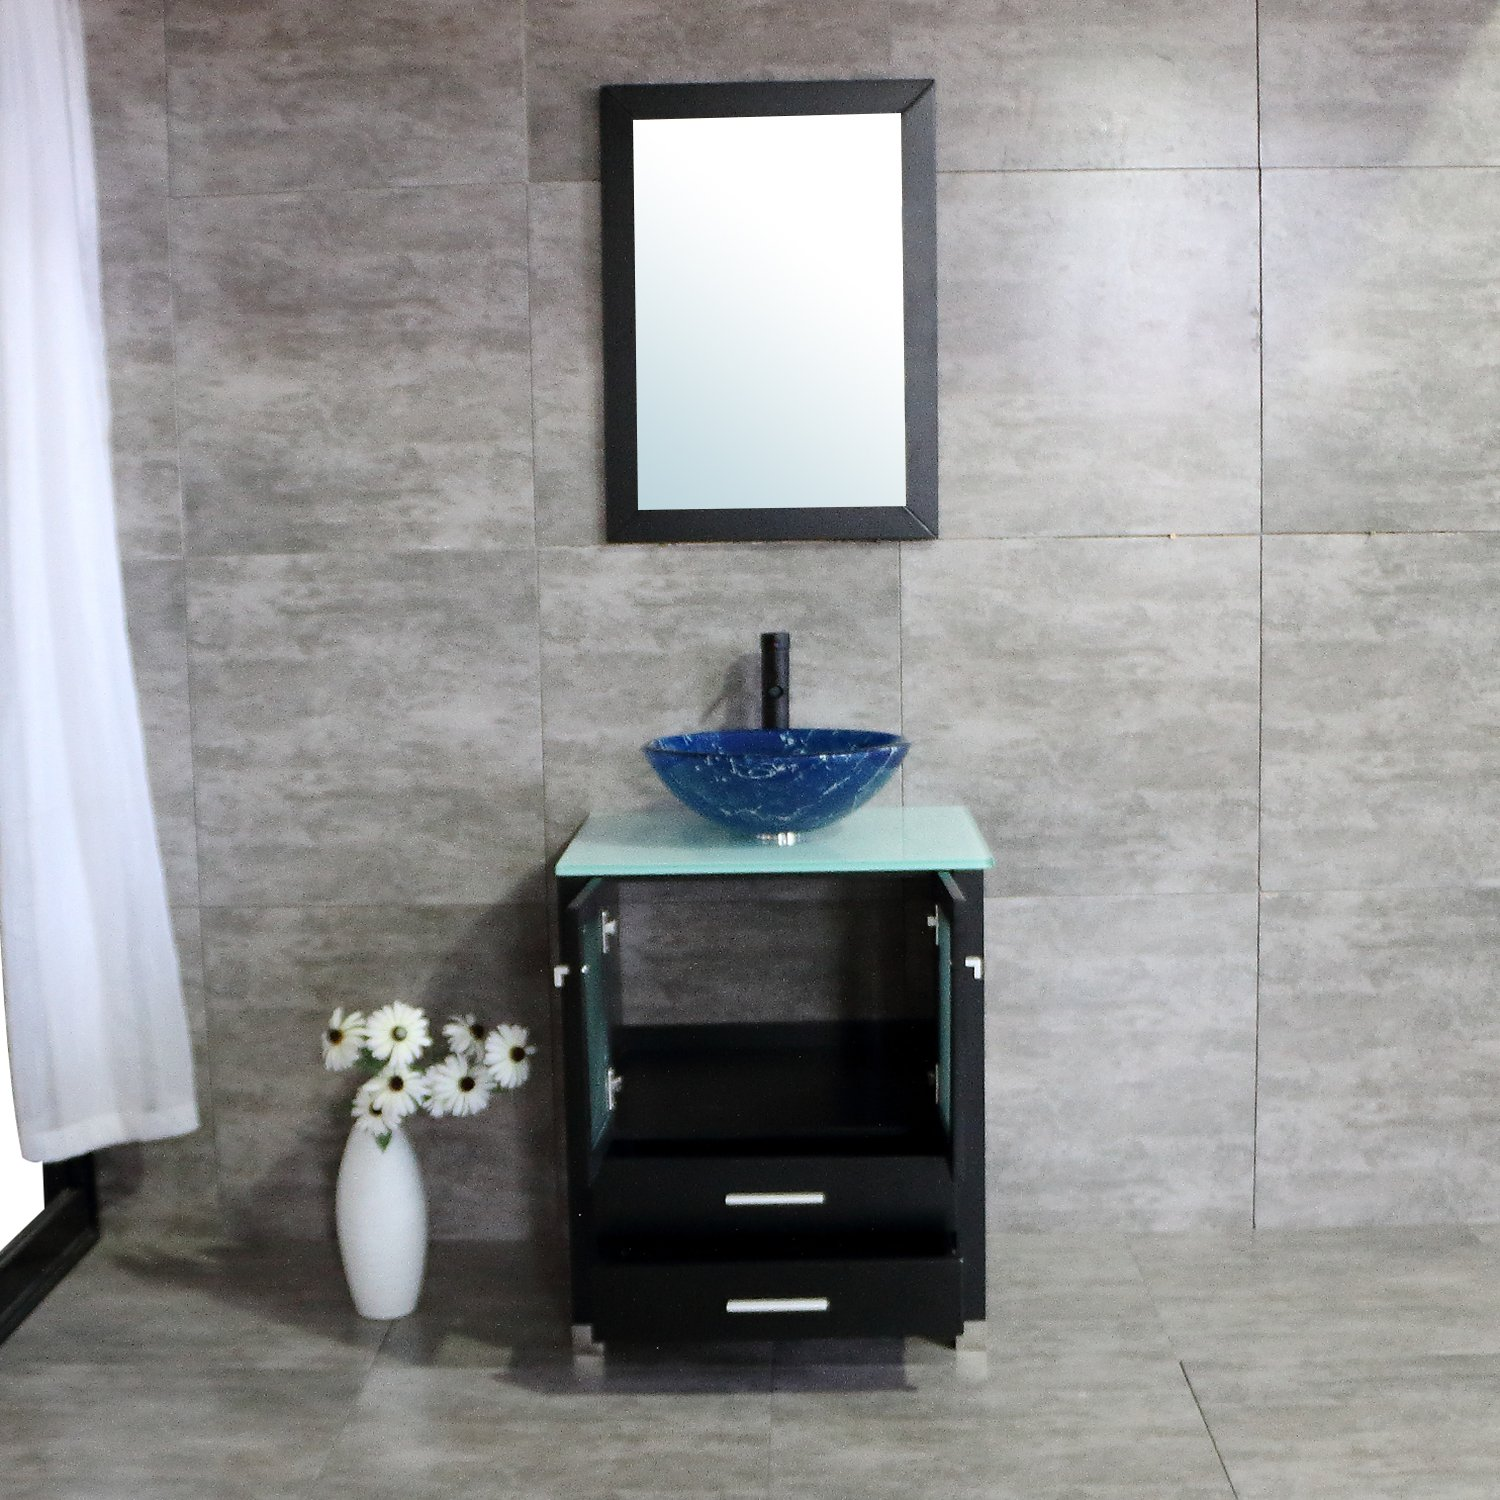 BATHJOY 24 Inches Bathroom Vanity Set Wood Cabinet Top Tempered Glass Vessel Sink ORB Faucet Combo with Mirror